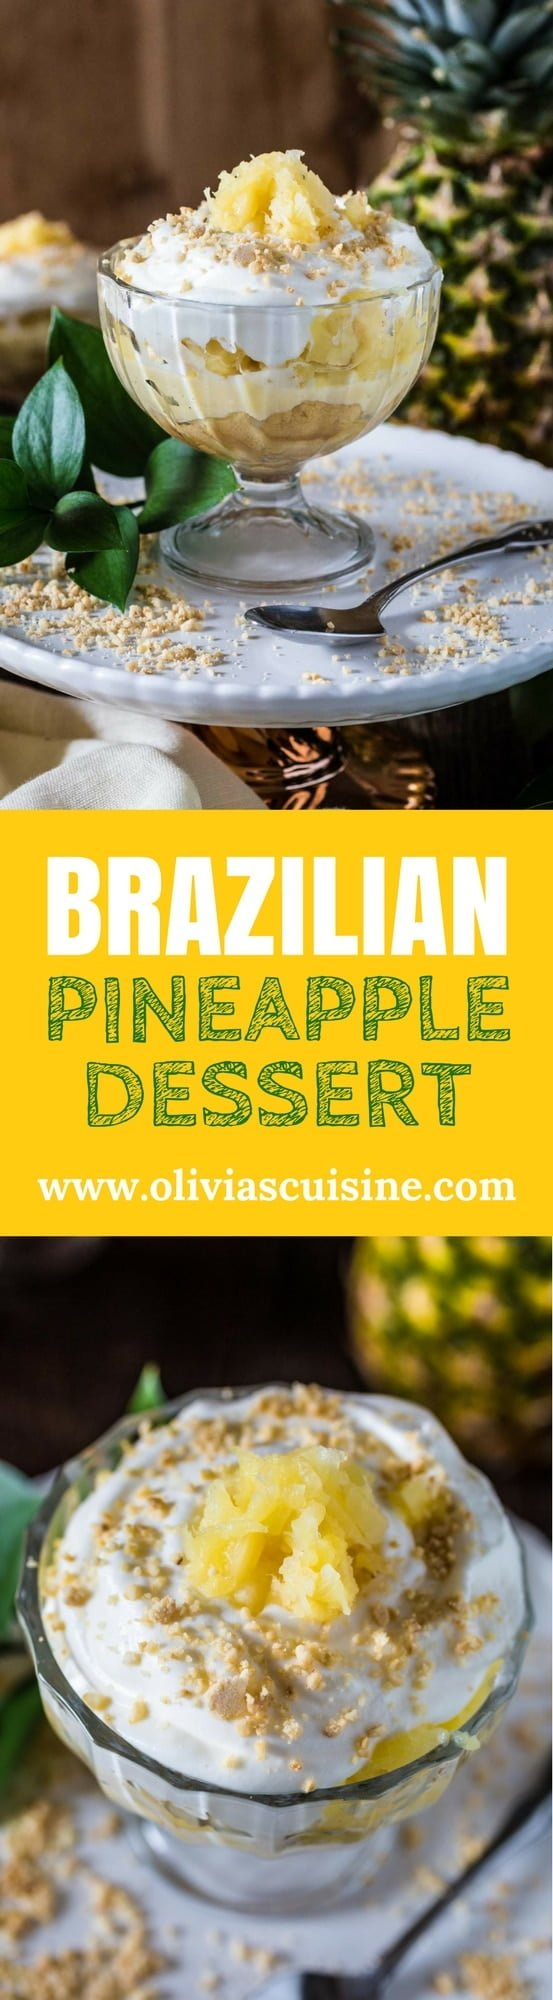 Brazilian Pineapple Dessert | www.oliviascuisine.com | Easy, delicious and tropical. What could be better than that? And don't worry. You get to make this all year round, since it's made with canned pineapples!